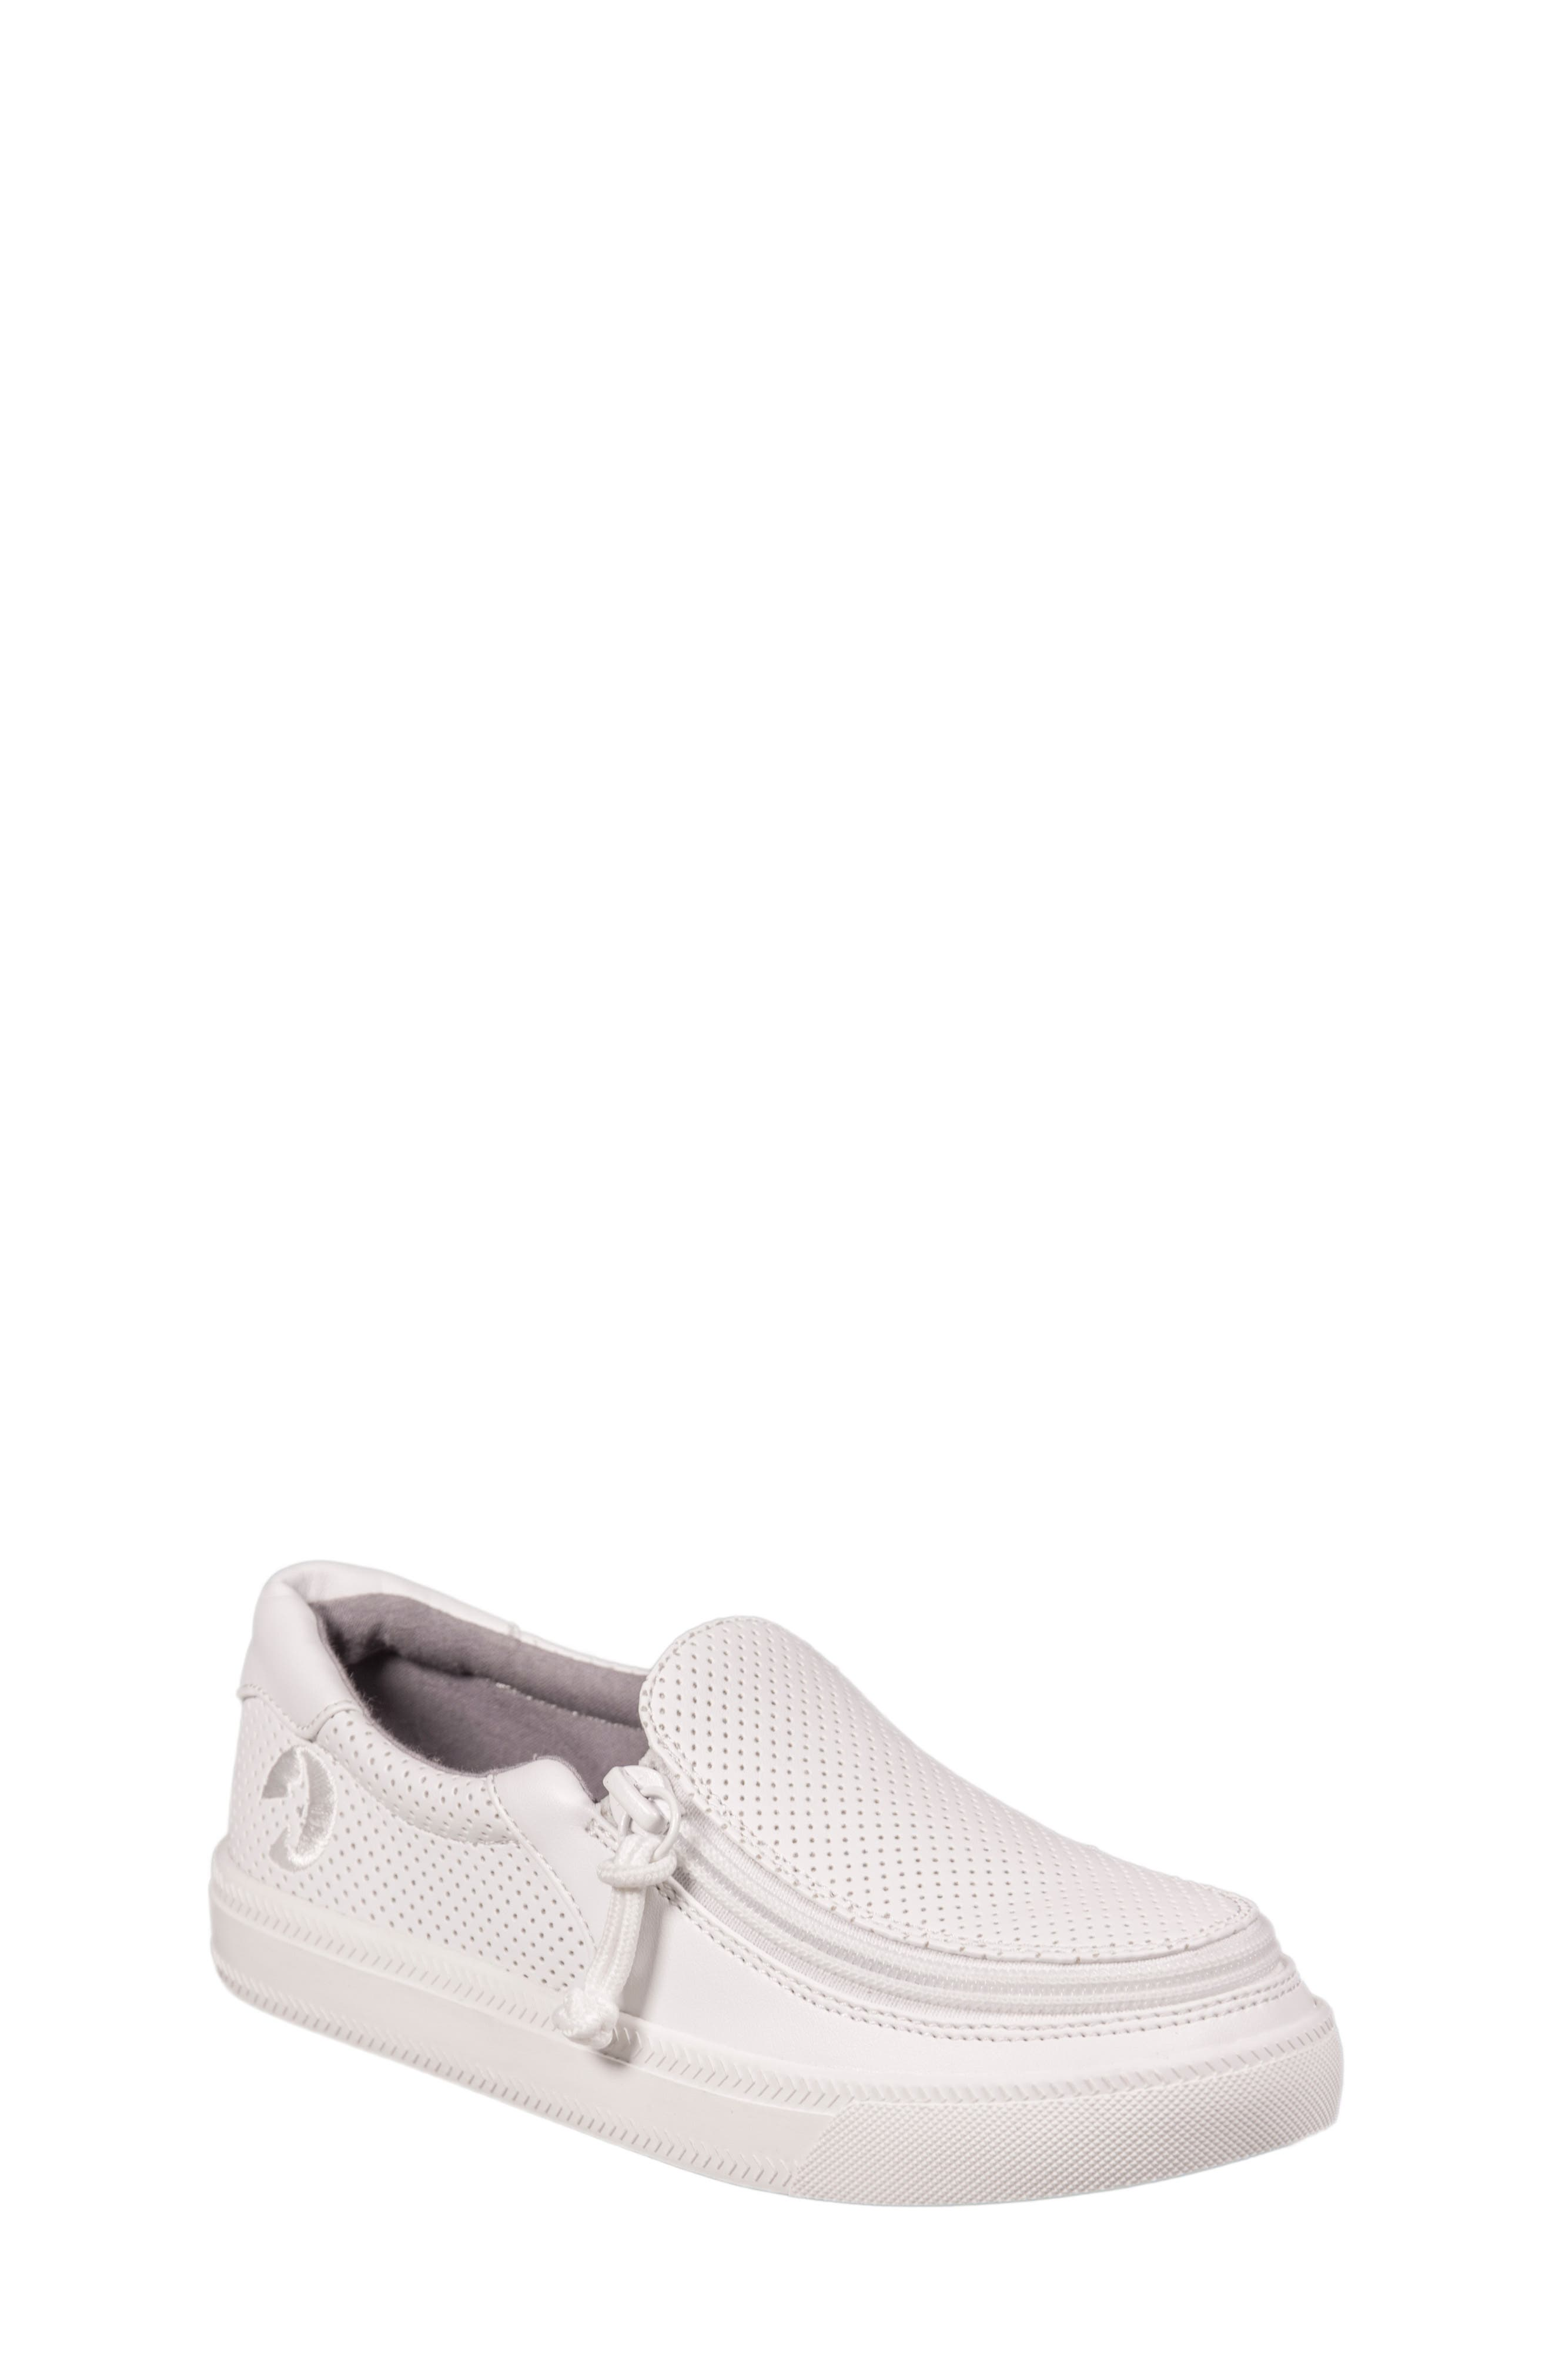 Zip Around Perforated Low Top Sneaker,                             Main thumbnail 1, color,                             White Perforated